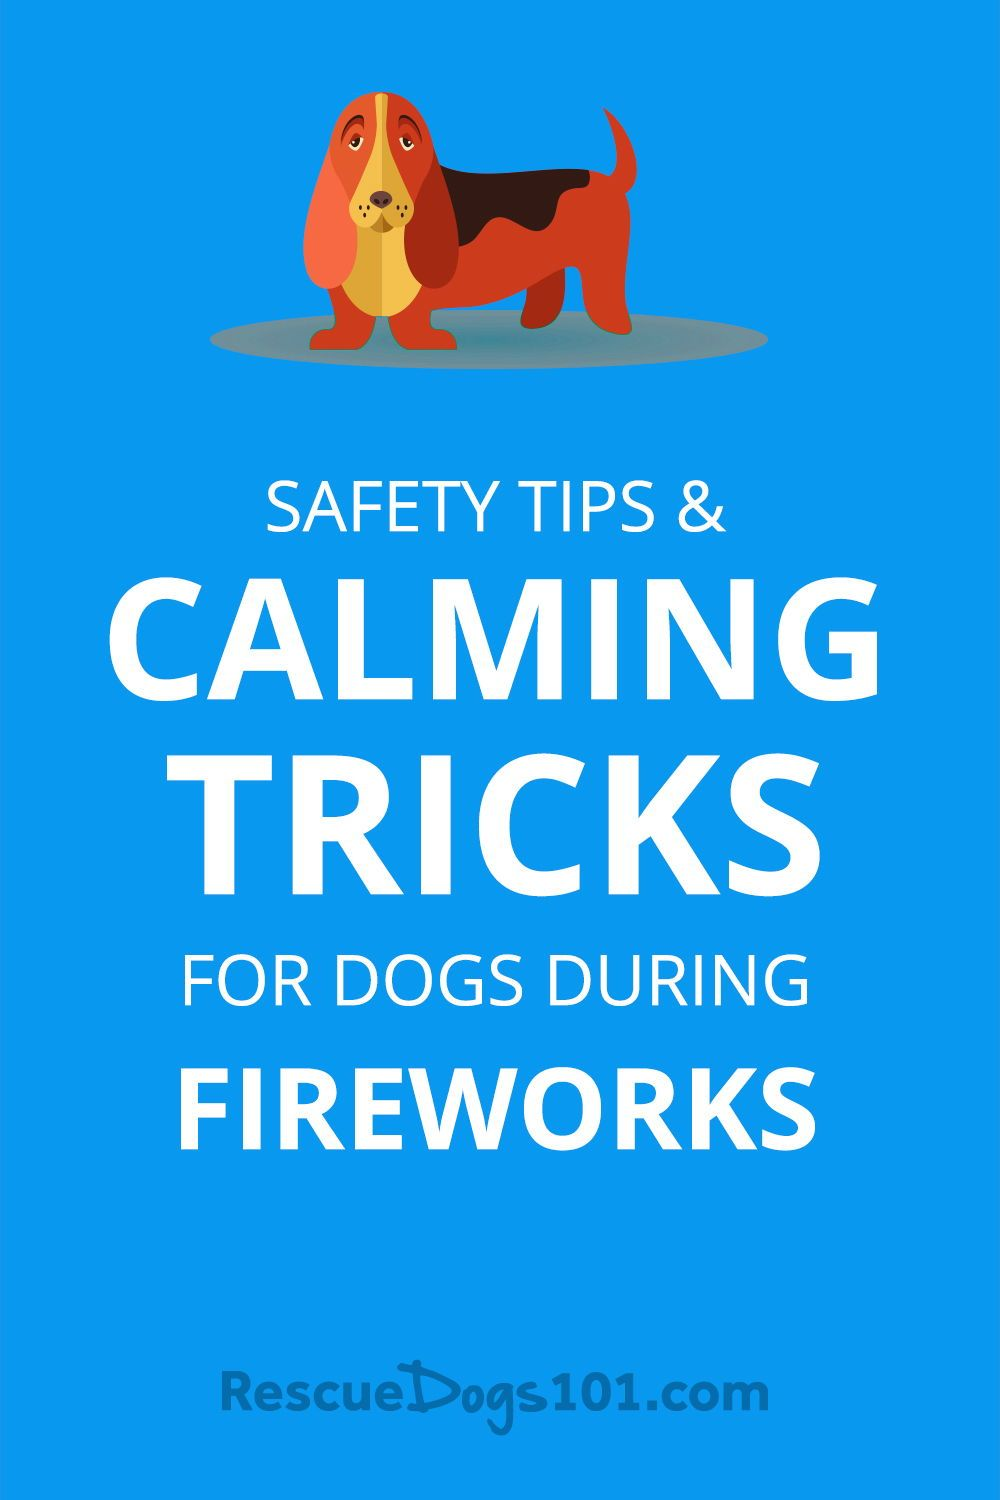 My Dog is Afraid of Fireworks... 9 Safety Tips and Calming